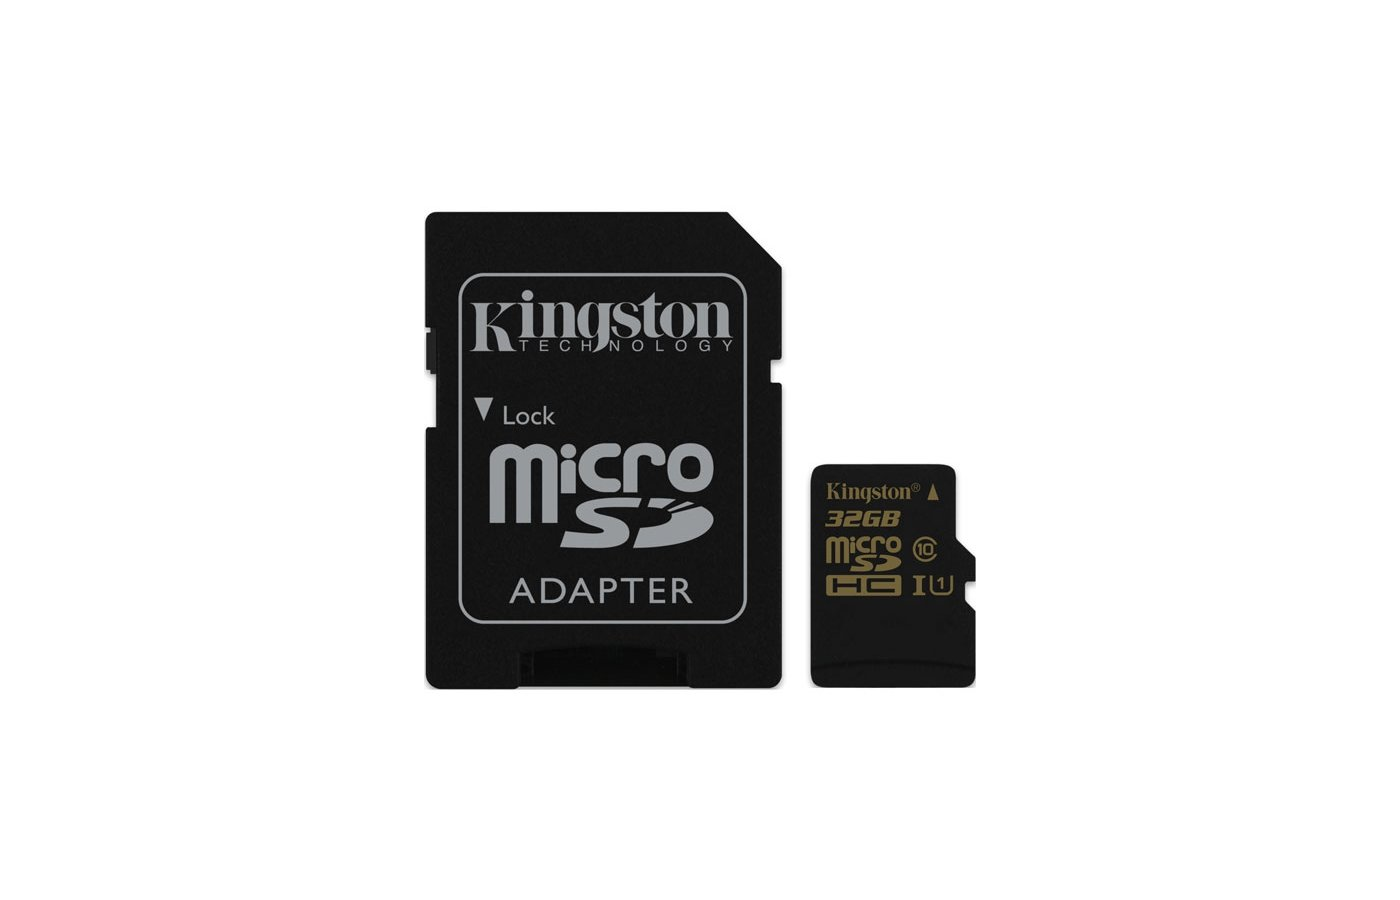 Карта памяти Kingston microSDHC 32Gb Class 10 + адаптер UHS-I 90R/45W (SDCA10/32GB)